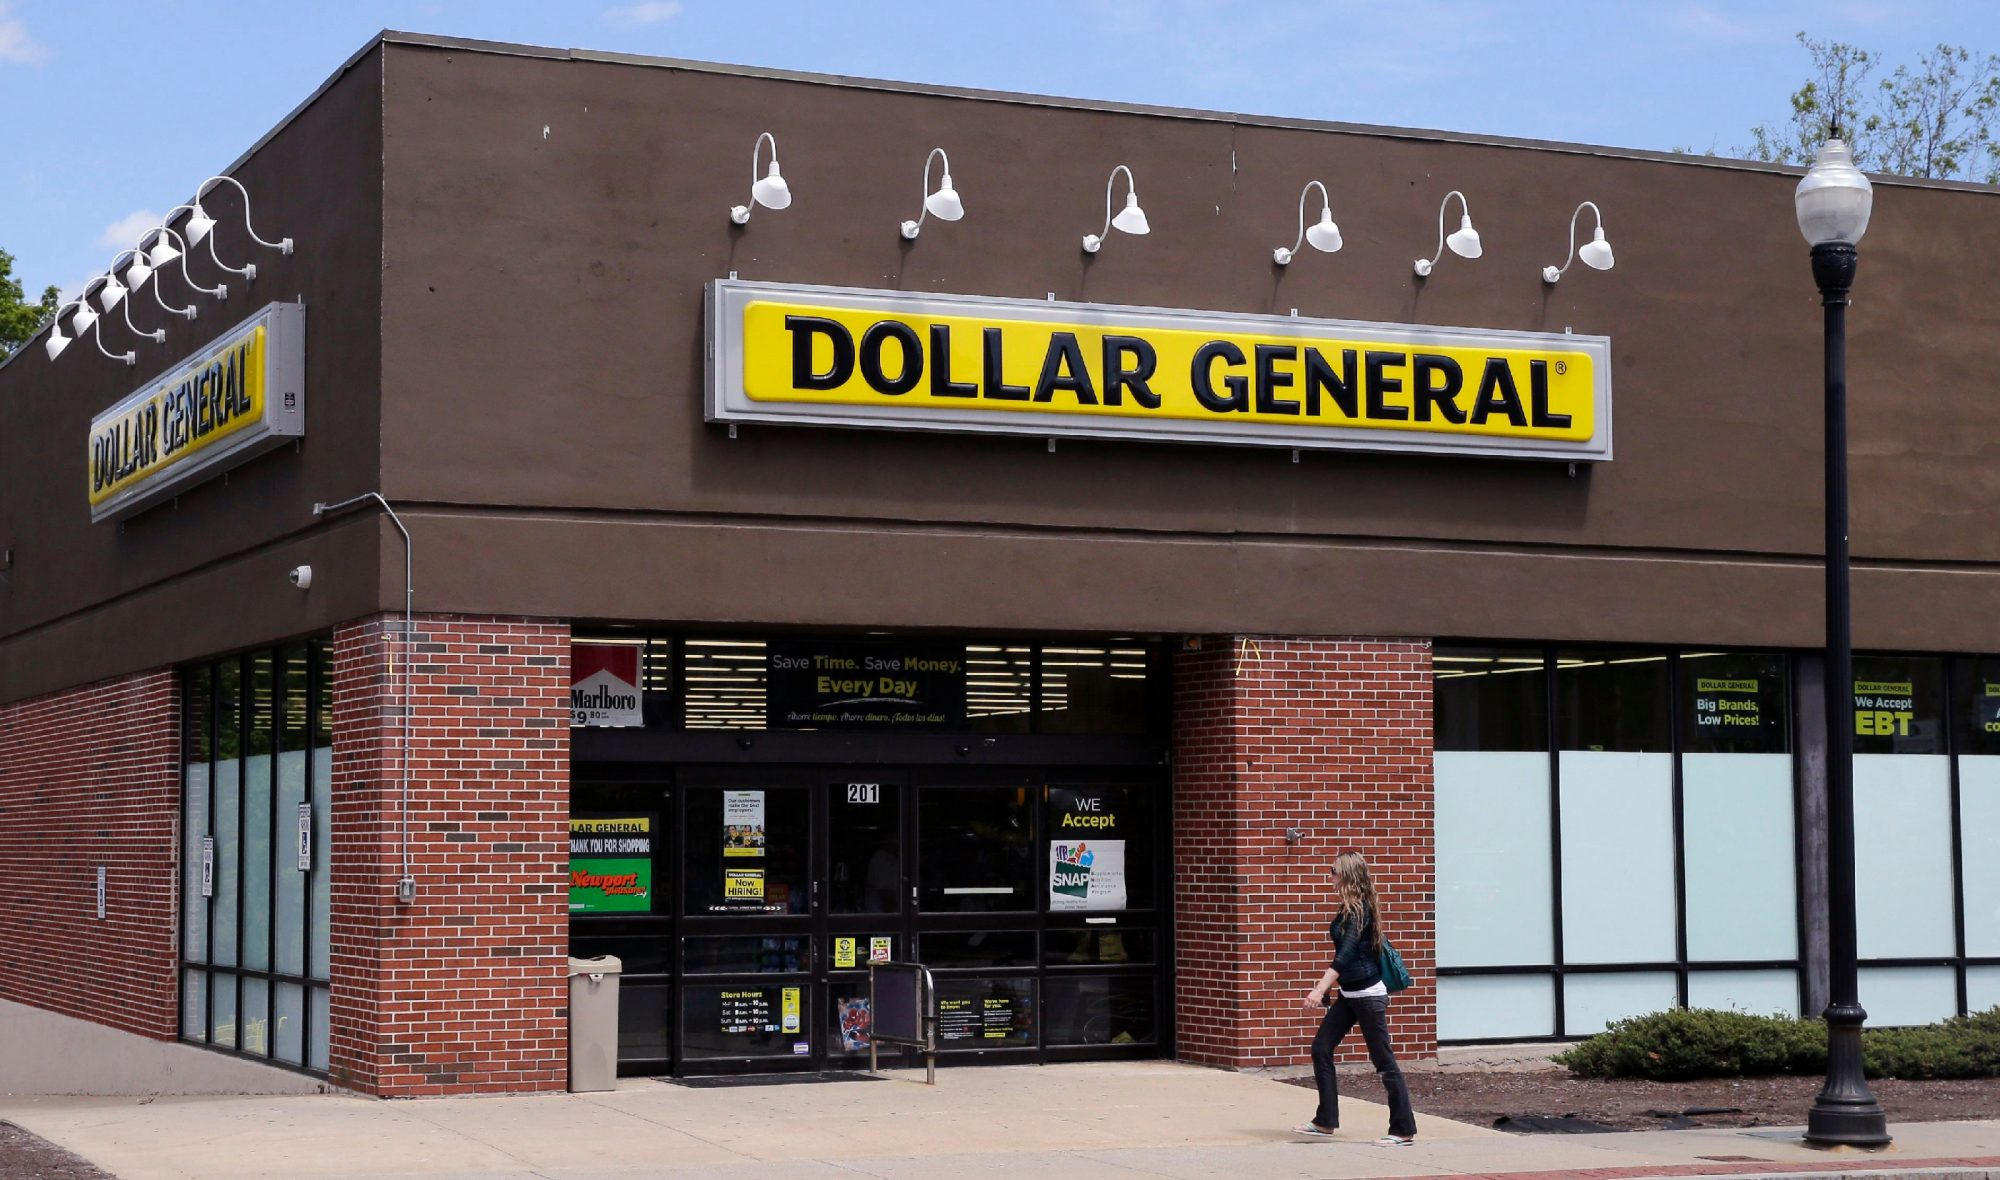 A woman walks past a Dollar General store in Methuen, Mass. On Thursday, May 26, 2016.